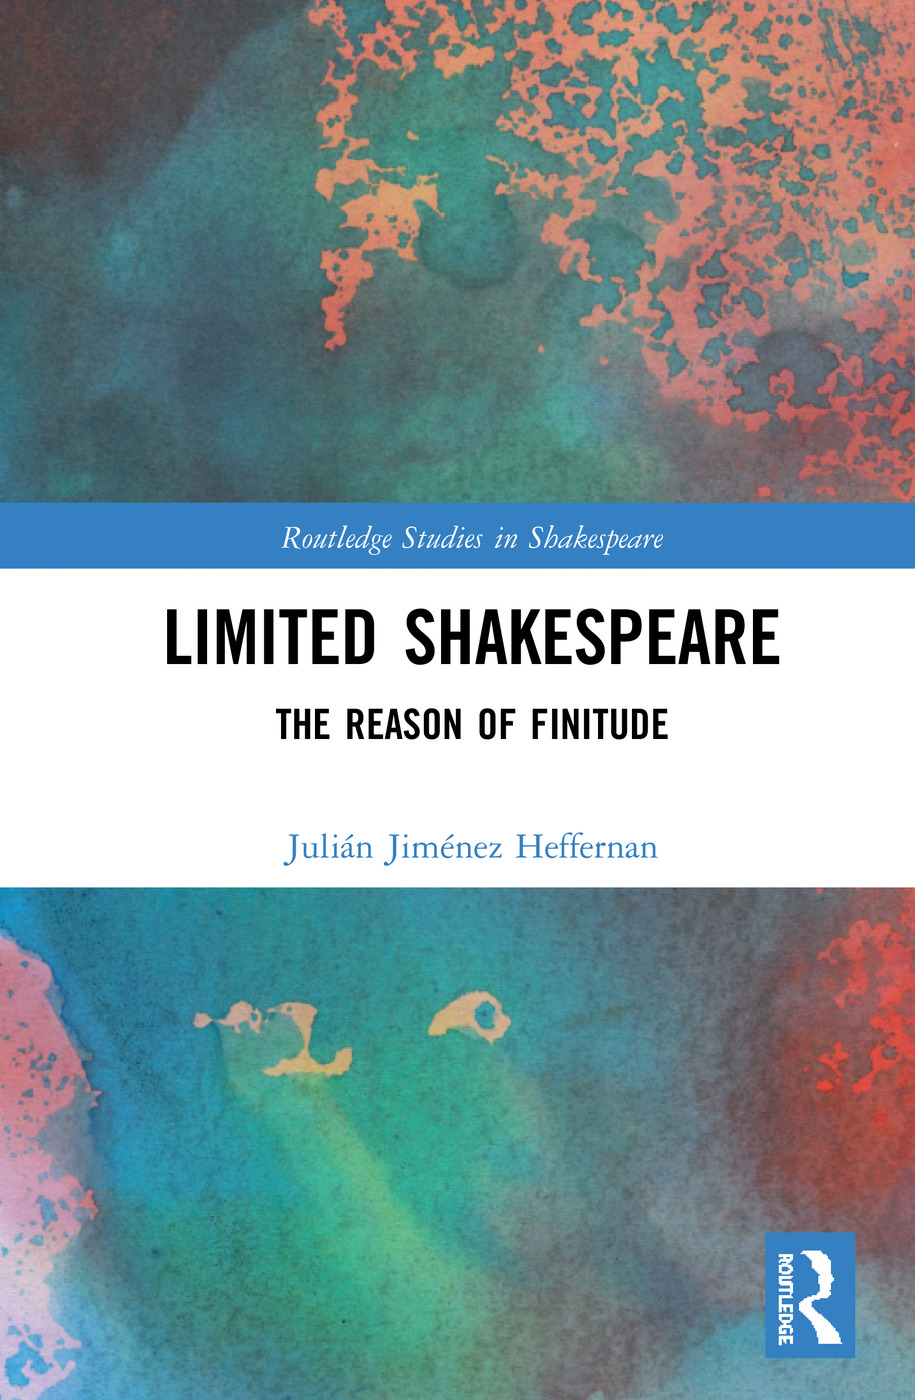 Limited Shakespeare: The Reason of Finitude book cover